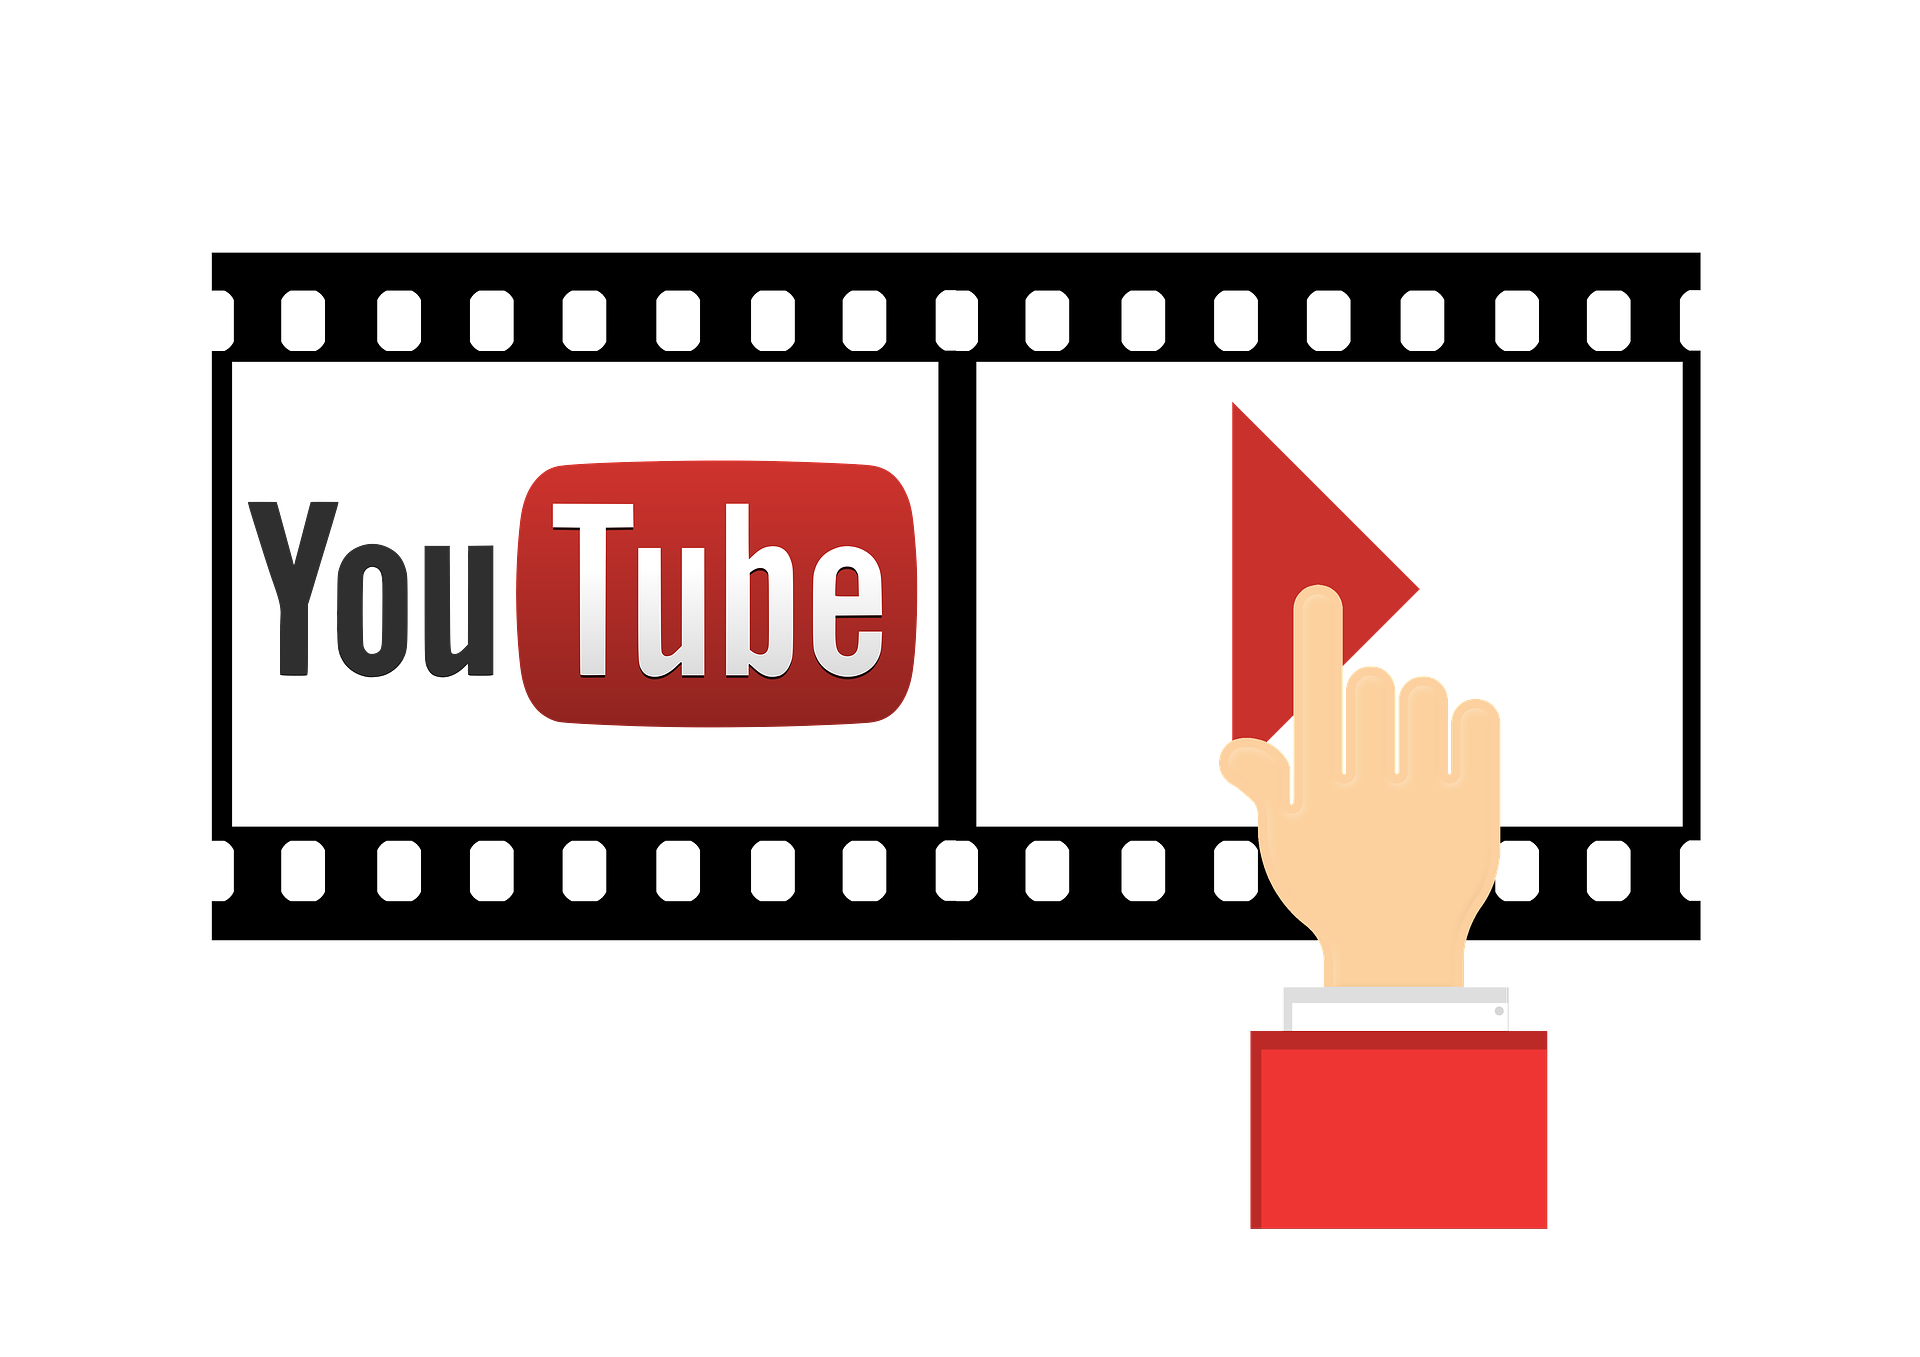 YouTube Analytics comes with reports on the traffic sources